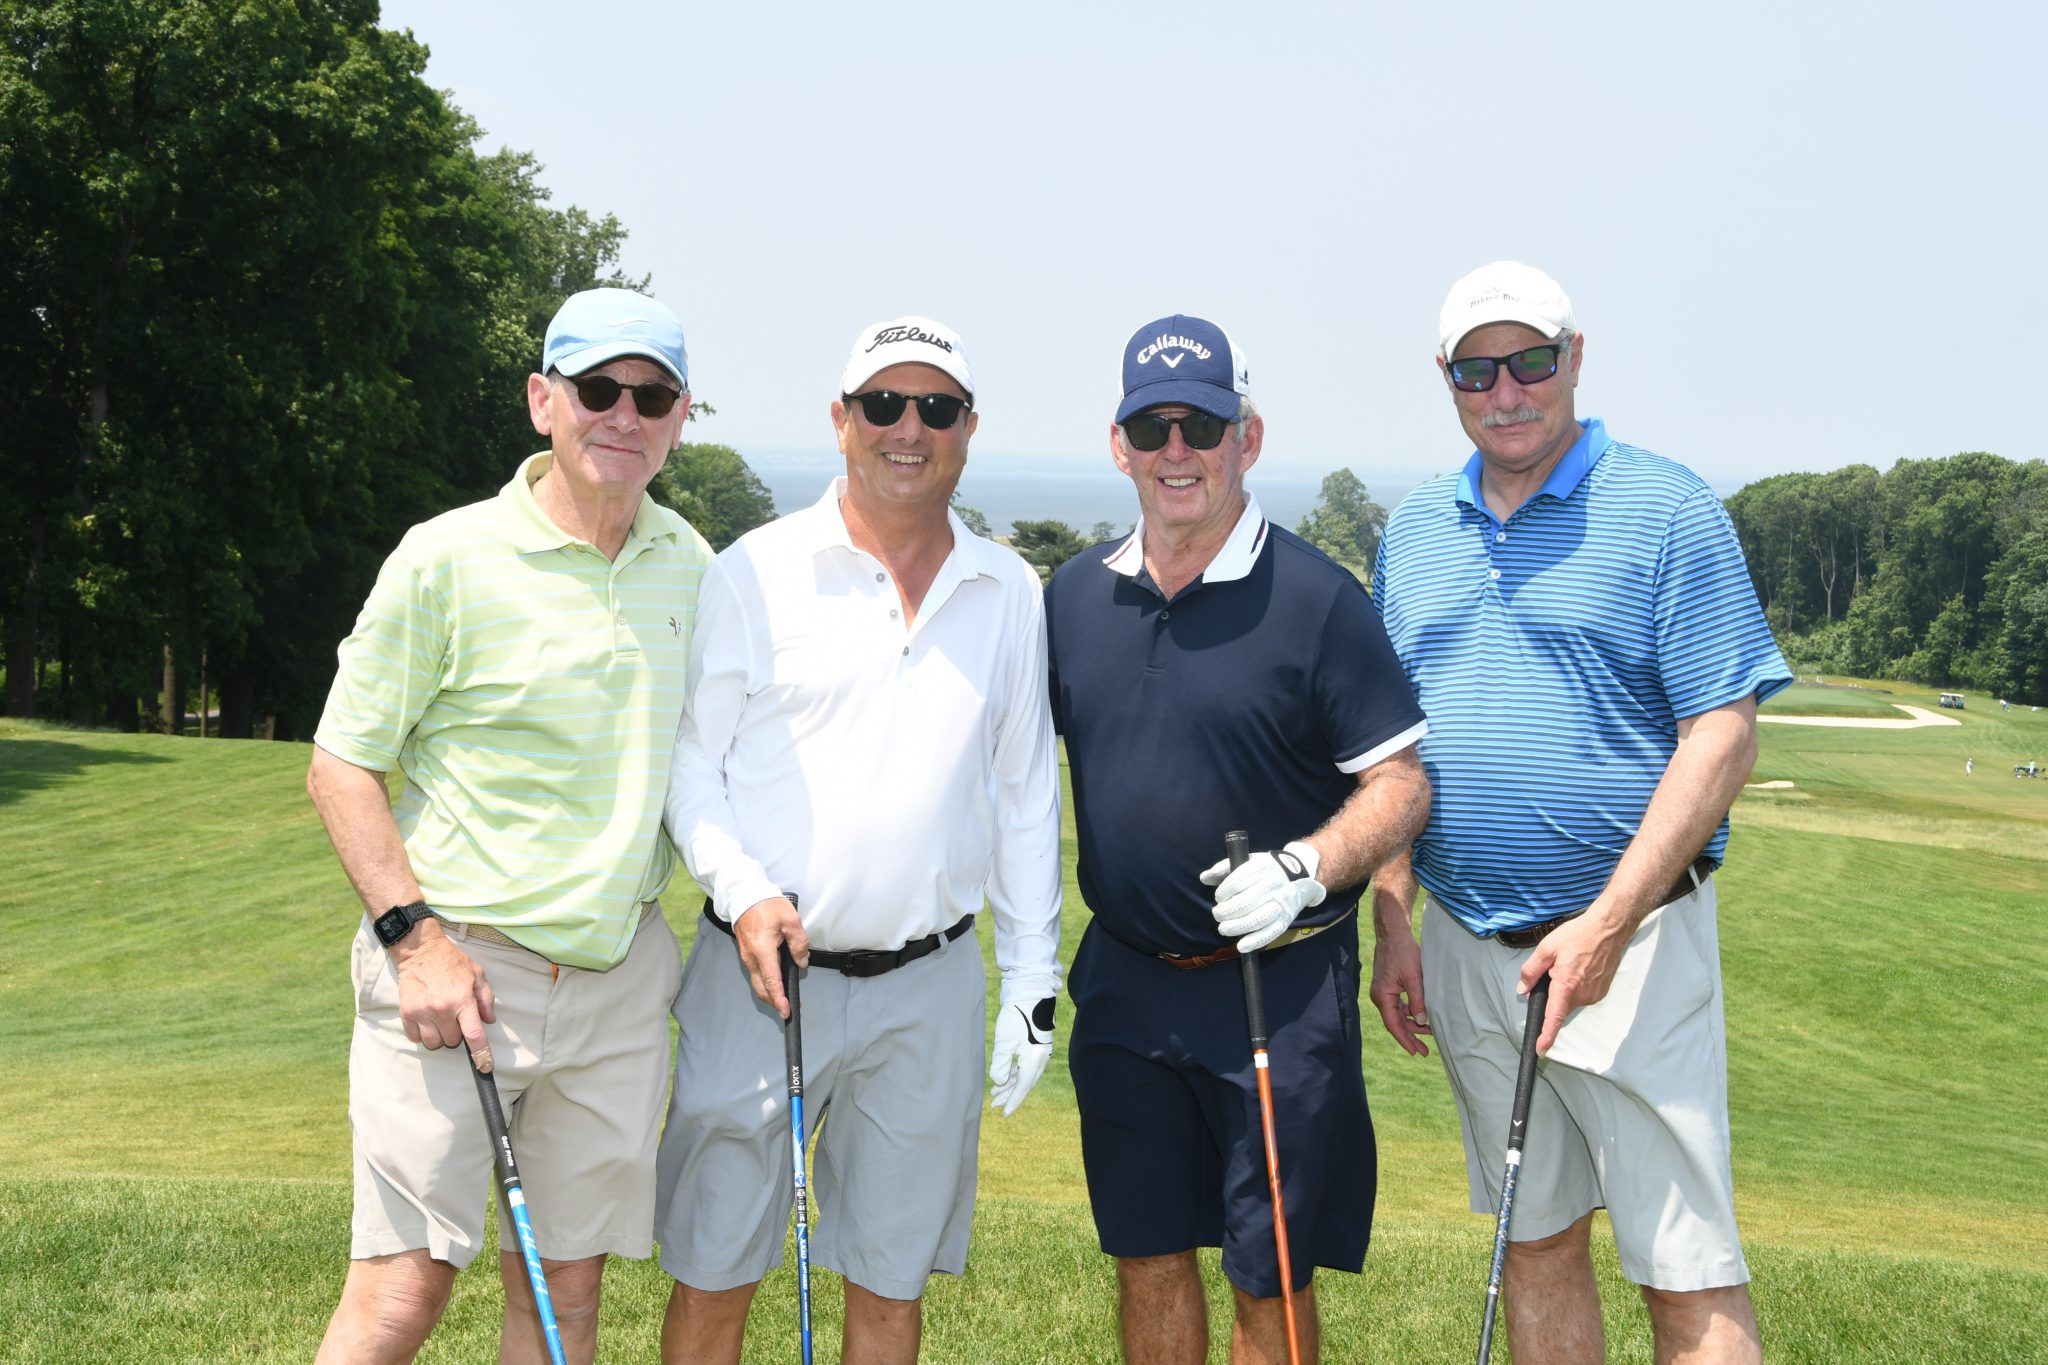 Displaying Left to right, Michael Mullman, Ed Geller, Jeff Krevat and Peter Braverman.JPG